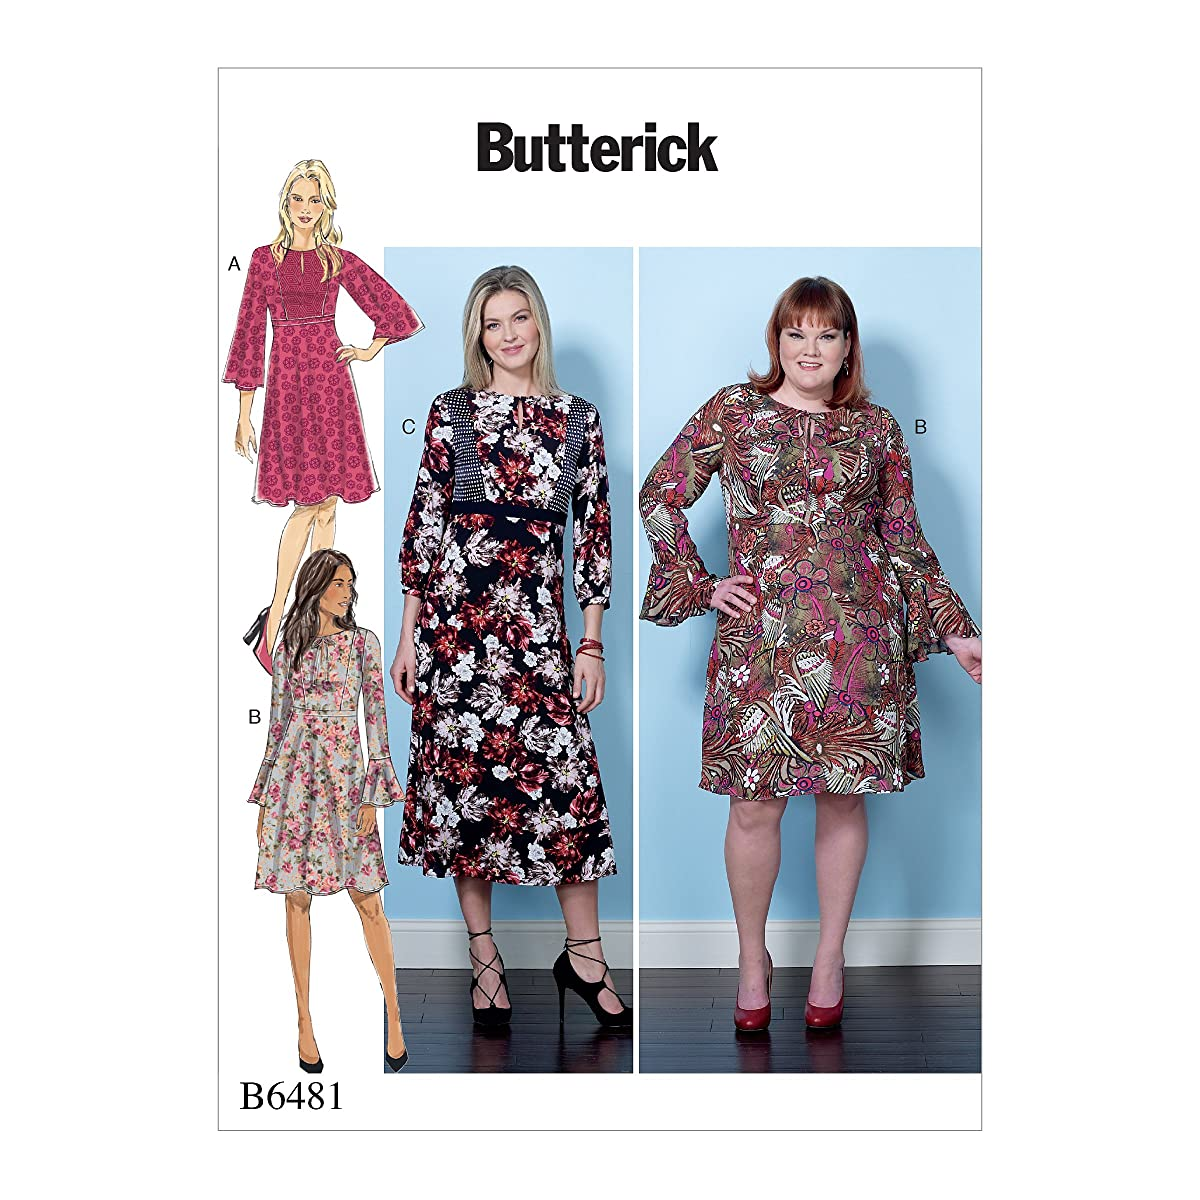 Butterick Patterns B6481B50 Misses'/Women's Dresses with Set-in Waistband, B5 (8-10-12-14-16)